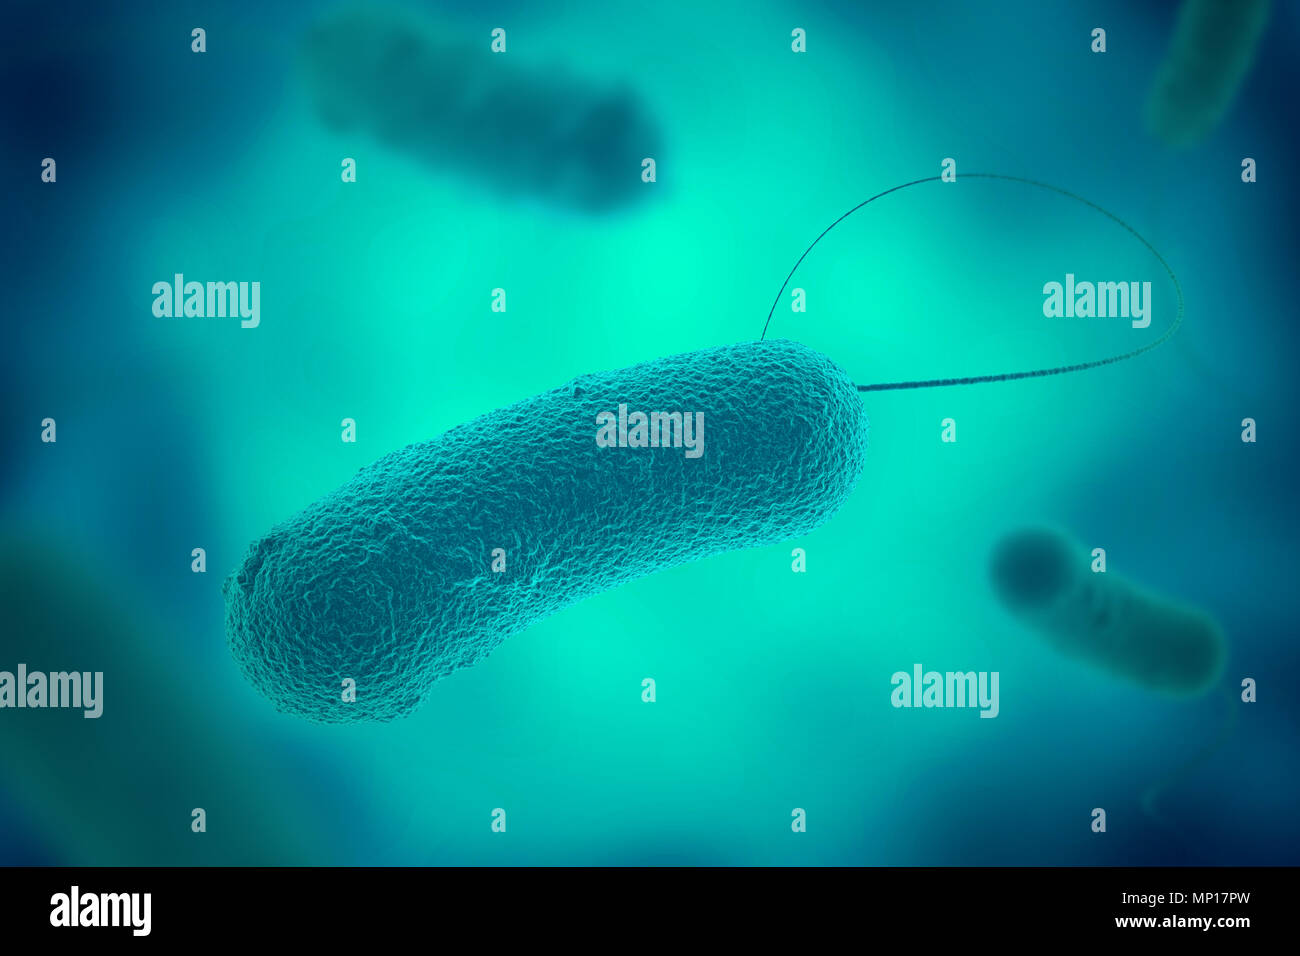 Blue legionella bacterium with flagella microscopic view in fluid 3D illustration - Stock Image